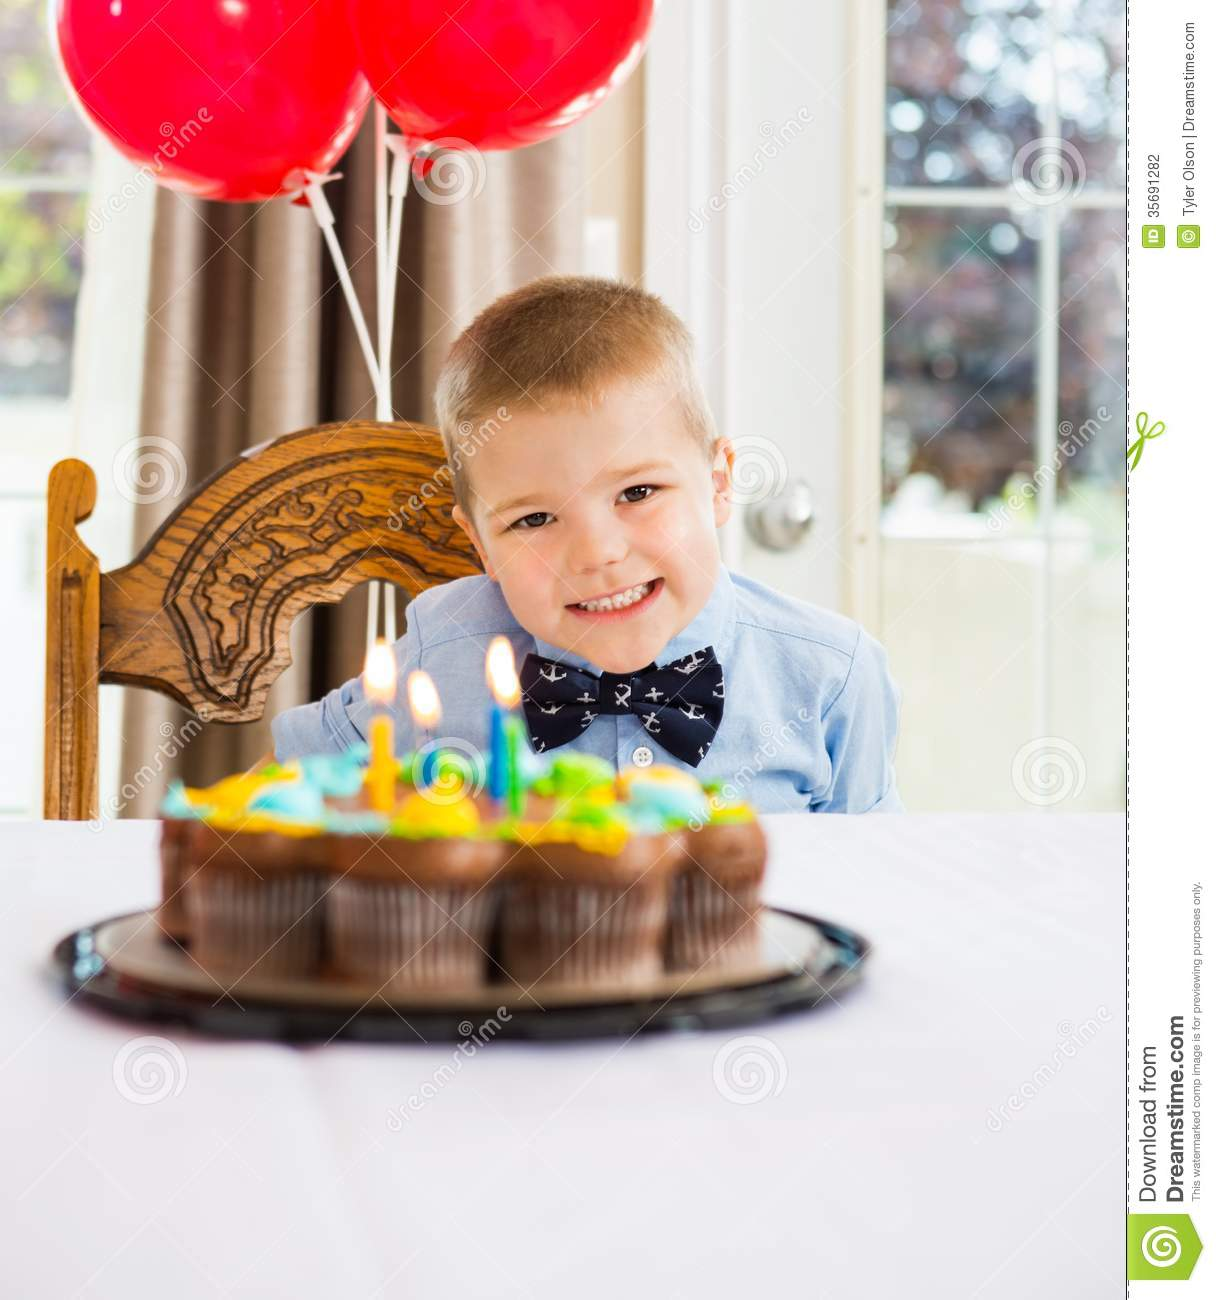 Happy Boy Sitting In Front Of Birthday Cake Stock Photo Image of